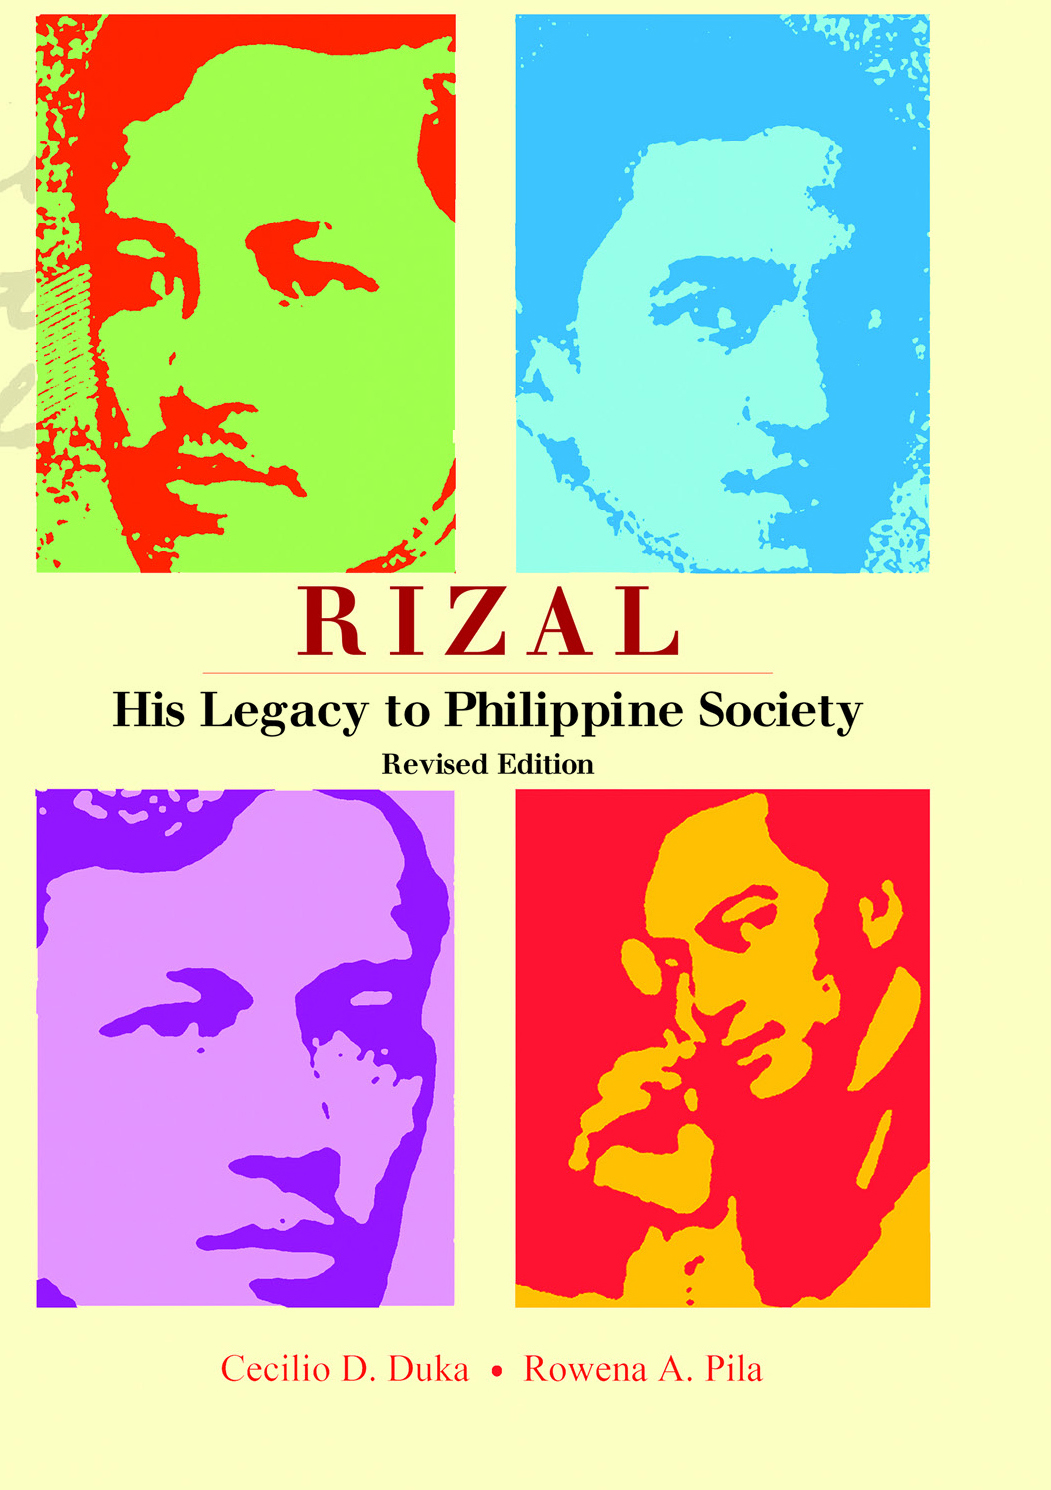 moral legacies of rizal Moral legacies of rizal moral legacies of rizal love of god fortitude purity and idealism serenity noble conduct self-control love of fellowmen initiative love of parents tolerance charity prudence love of country obedience courage courtesy and politeness will-power thrift honesty gratitude devotion of truth love for justice self-sacrifice.